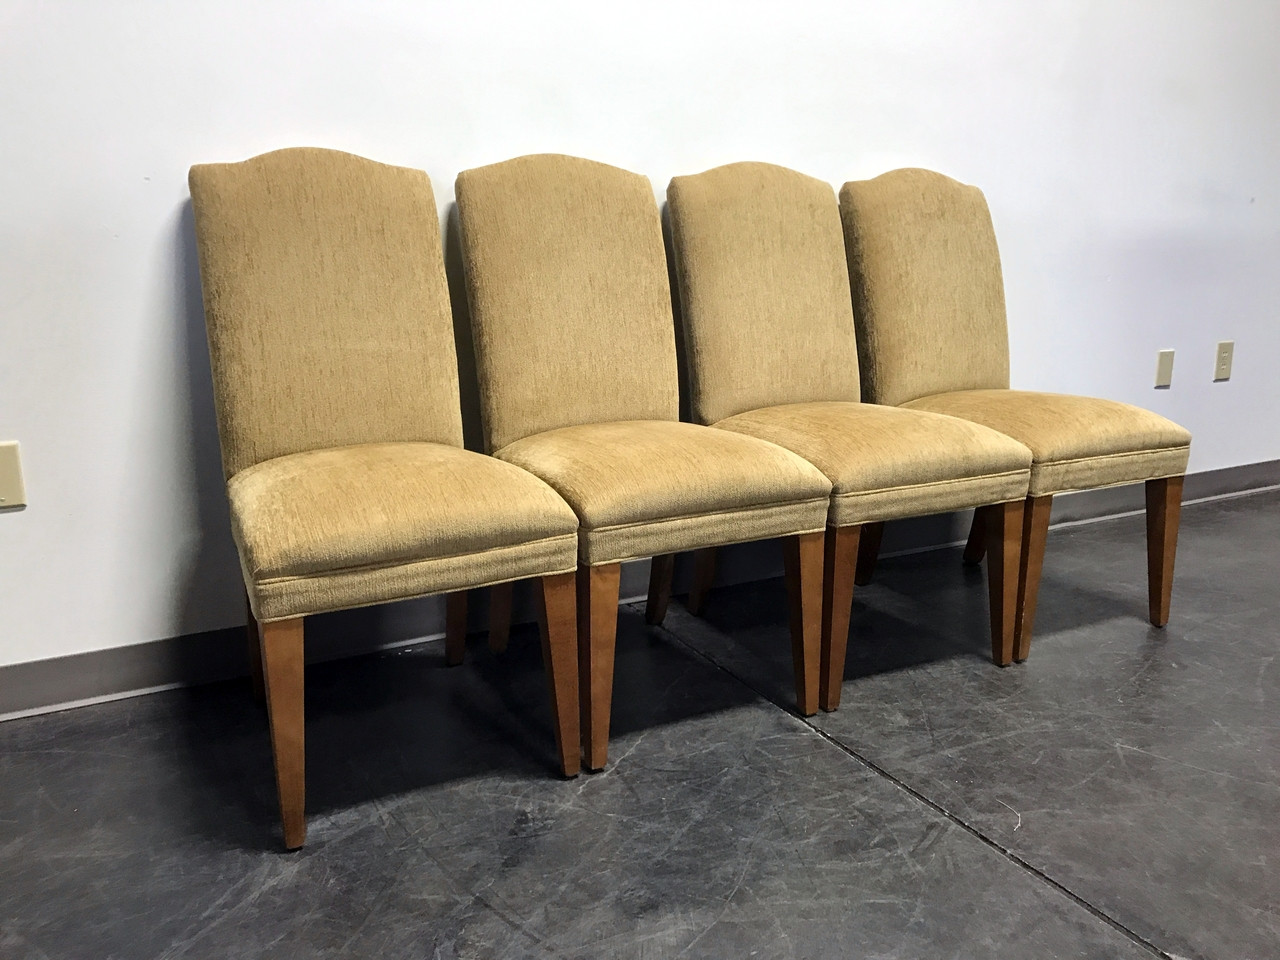 Restoration Hardware Dining Chairs Sold Out Mitchell Gold For Restoration Hardware Upholstered Dining Chairs Set Of 4